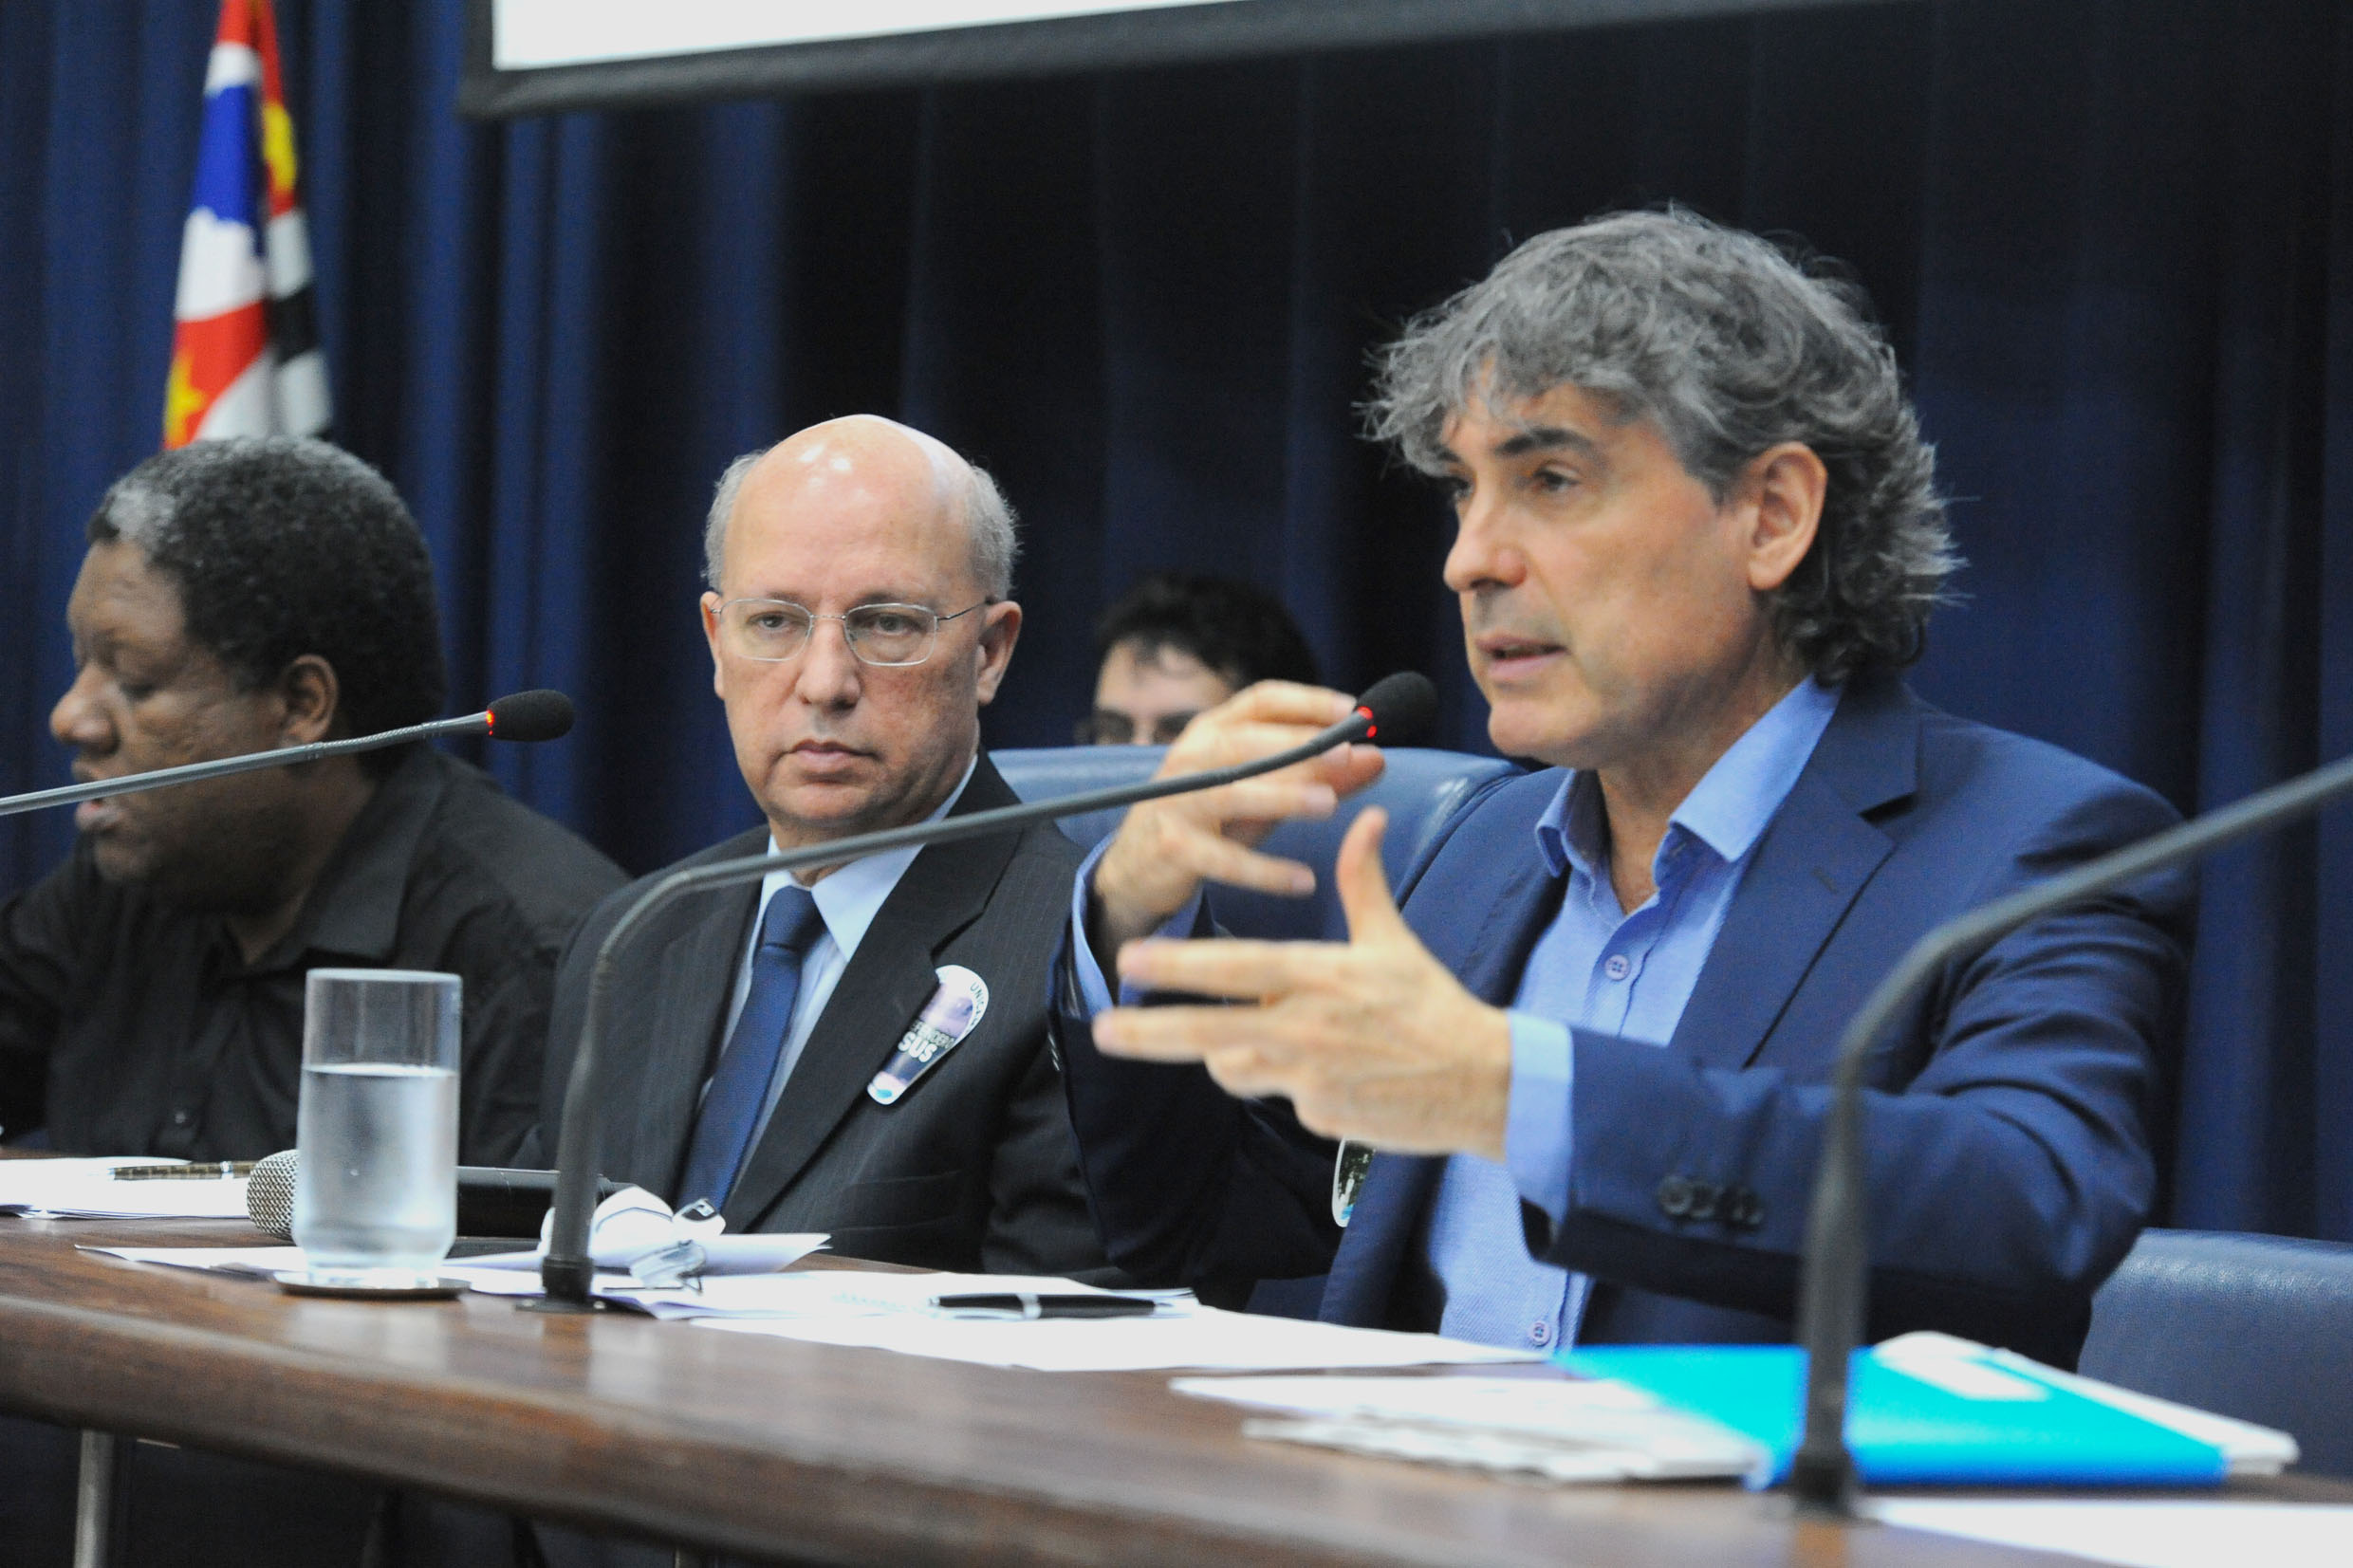 Carlos Neder e Carlos Giannazi<a style='float:right' href='https://www3.al.sp.gov.br/repositorio/noticia/N-06-2018/fg225250.jpg' target=_blank><img src='/_img/material-file-download-white.png' width='14px' alt='Clique para baixar a imagem'></a>